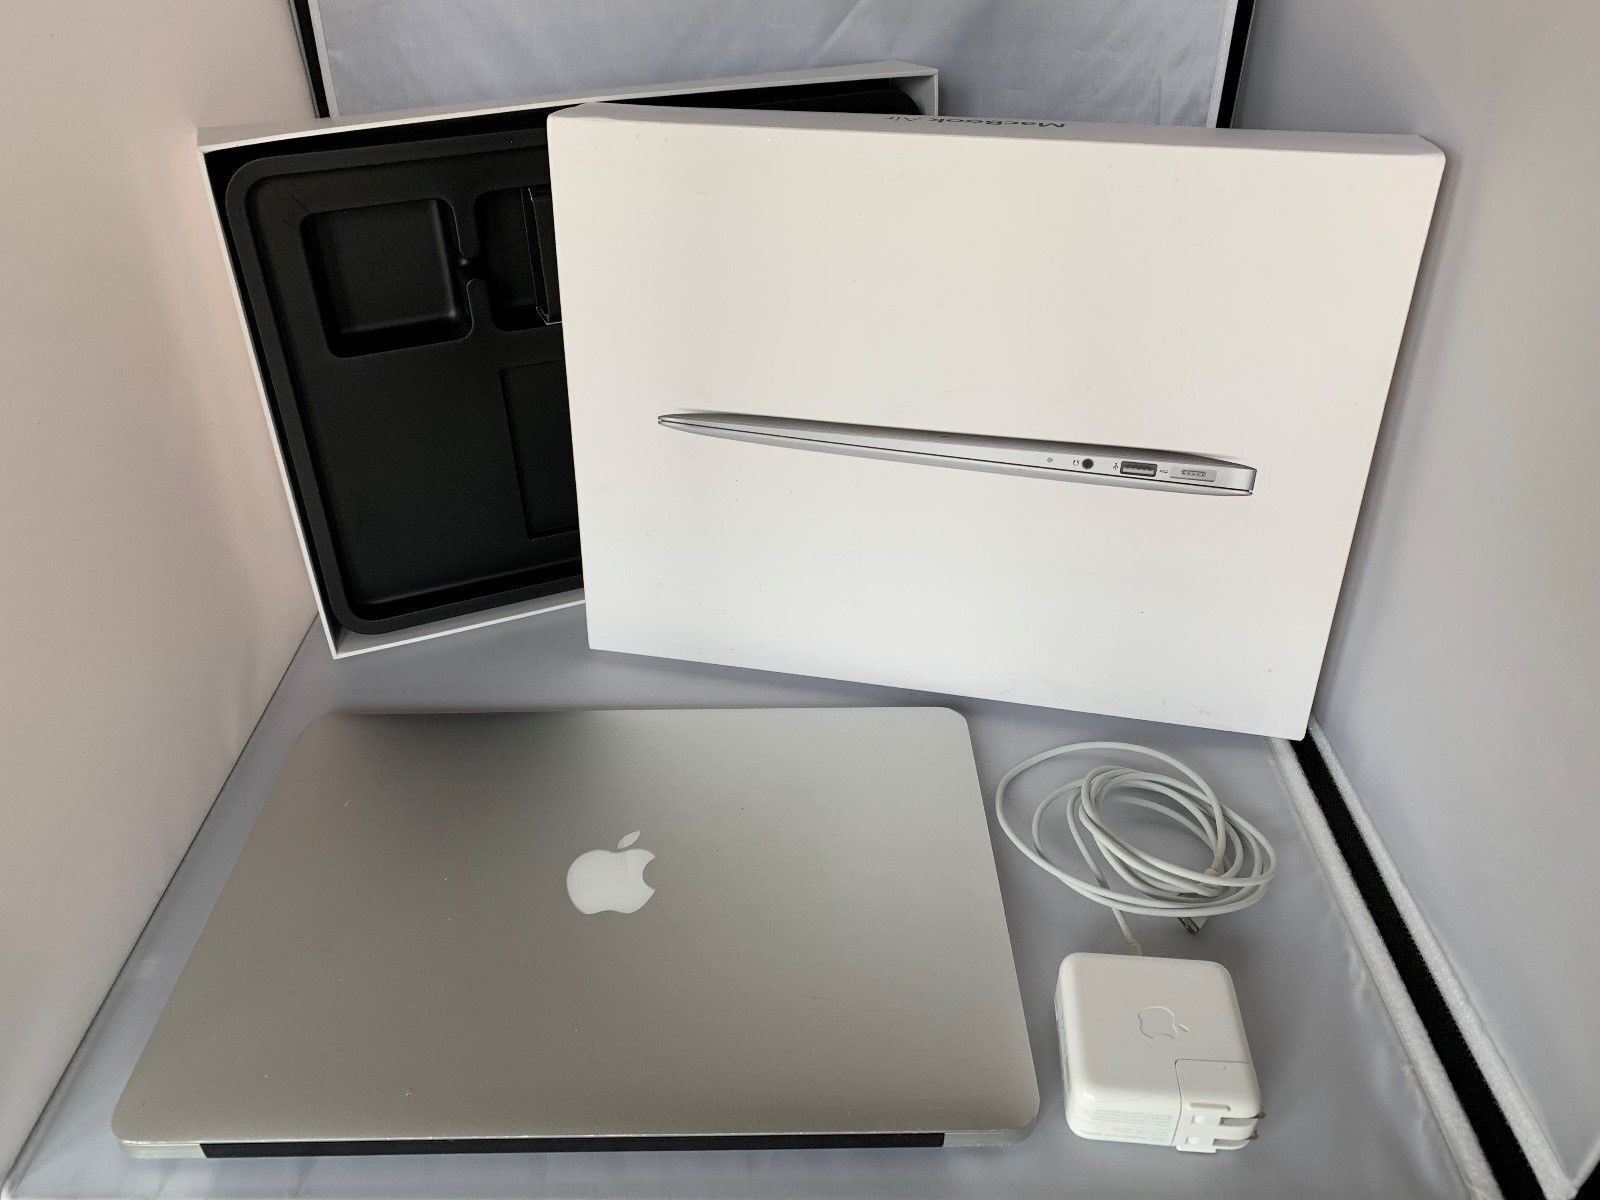 "2017 Apple MacBook Air 13.3"" Laptop 128GB MQD32LL/A 1.8GHz i5 8GB GREAT LOW CELL"